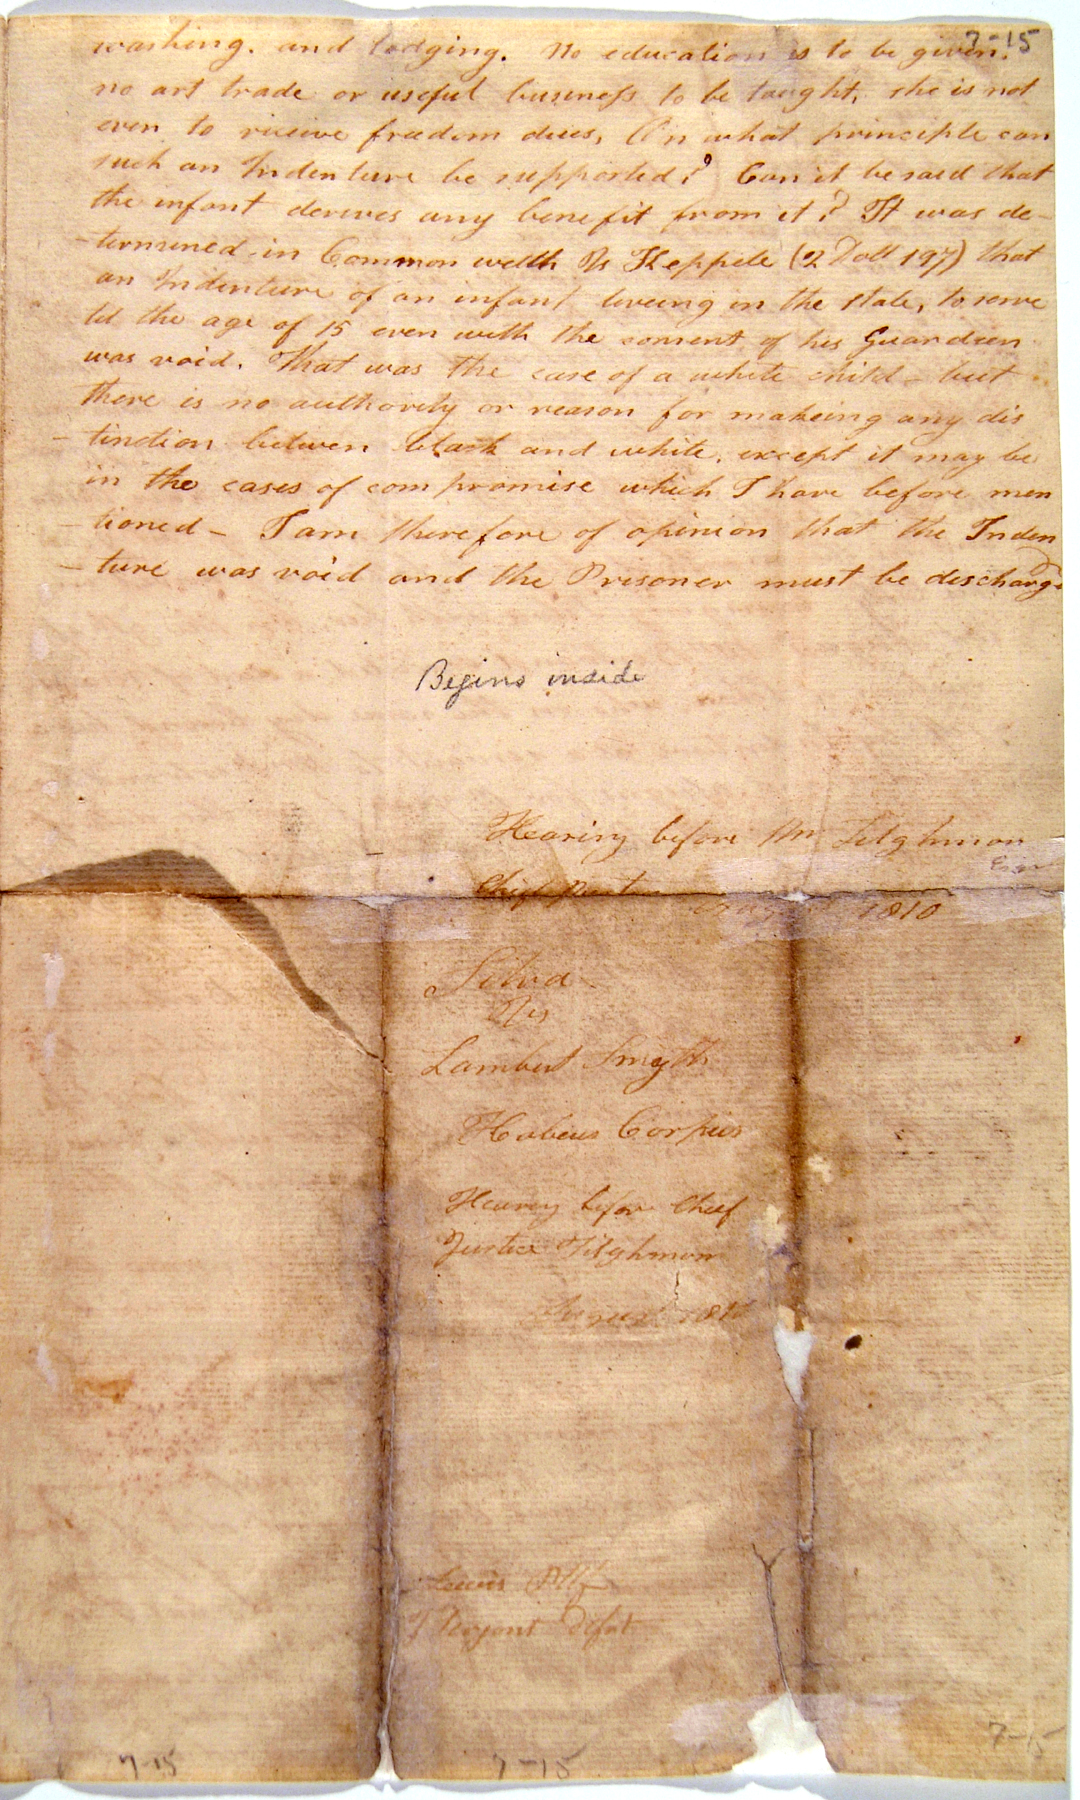 writ of habeas corpus essay A writ of habeas corpus is known as the the great and efficacious writ in all manner  the habeas writ was used in the  an essay on british politics.